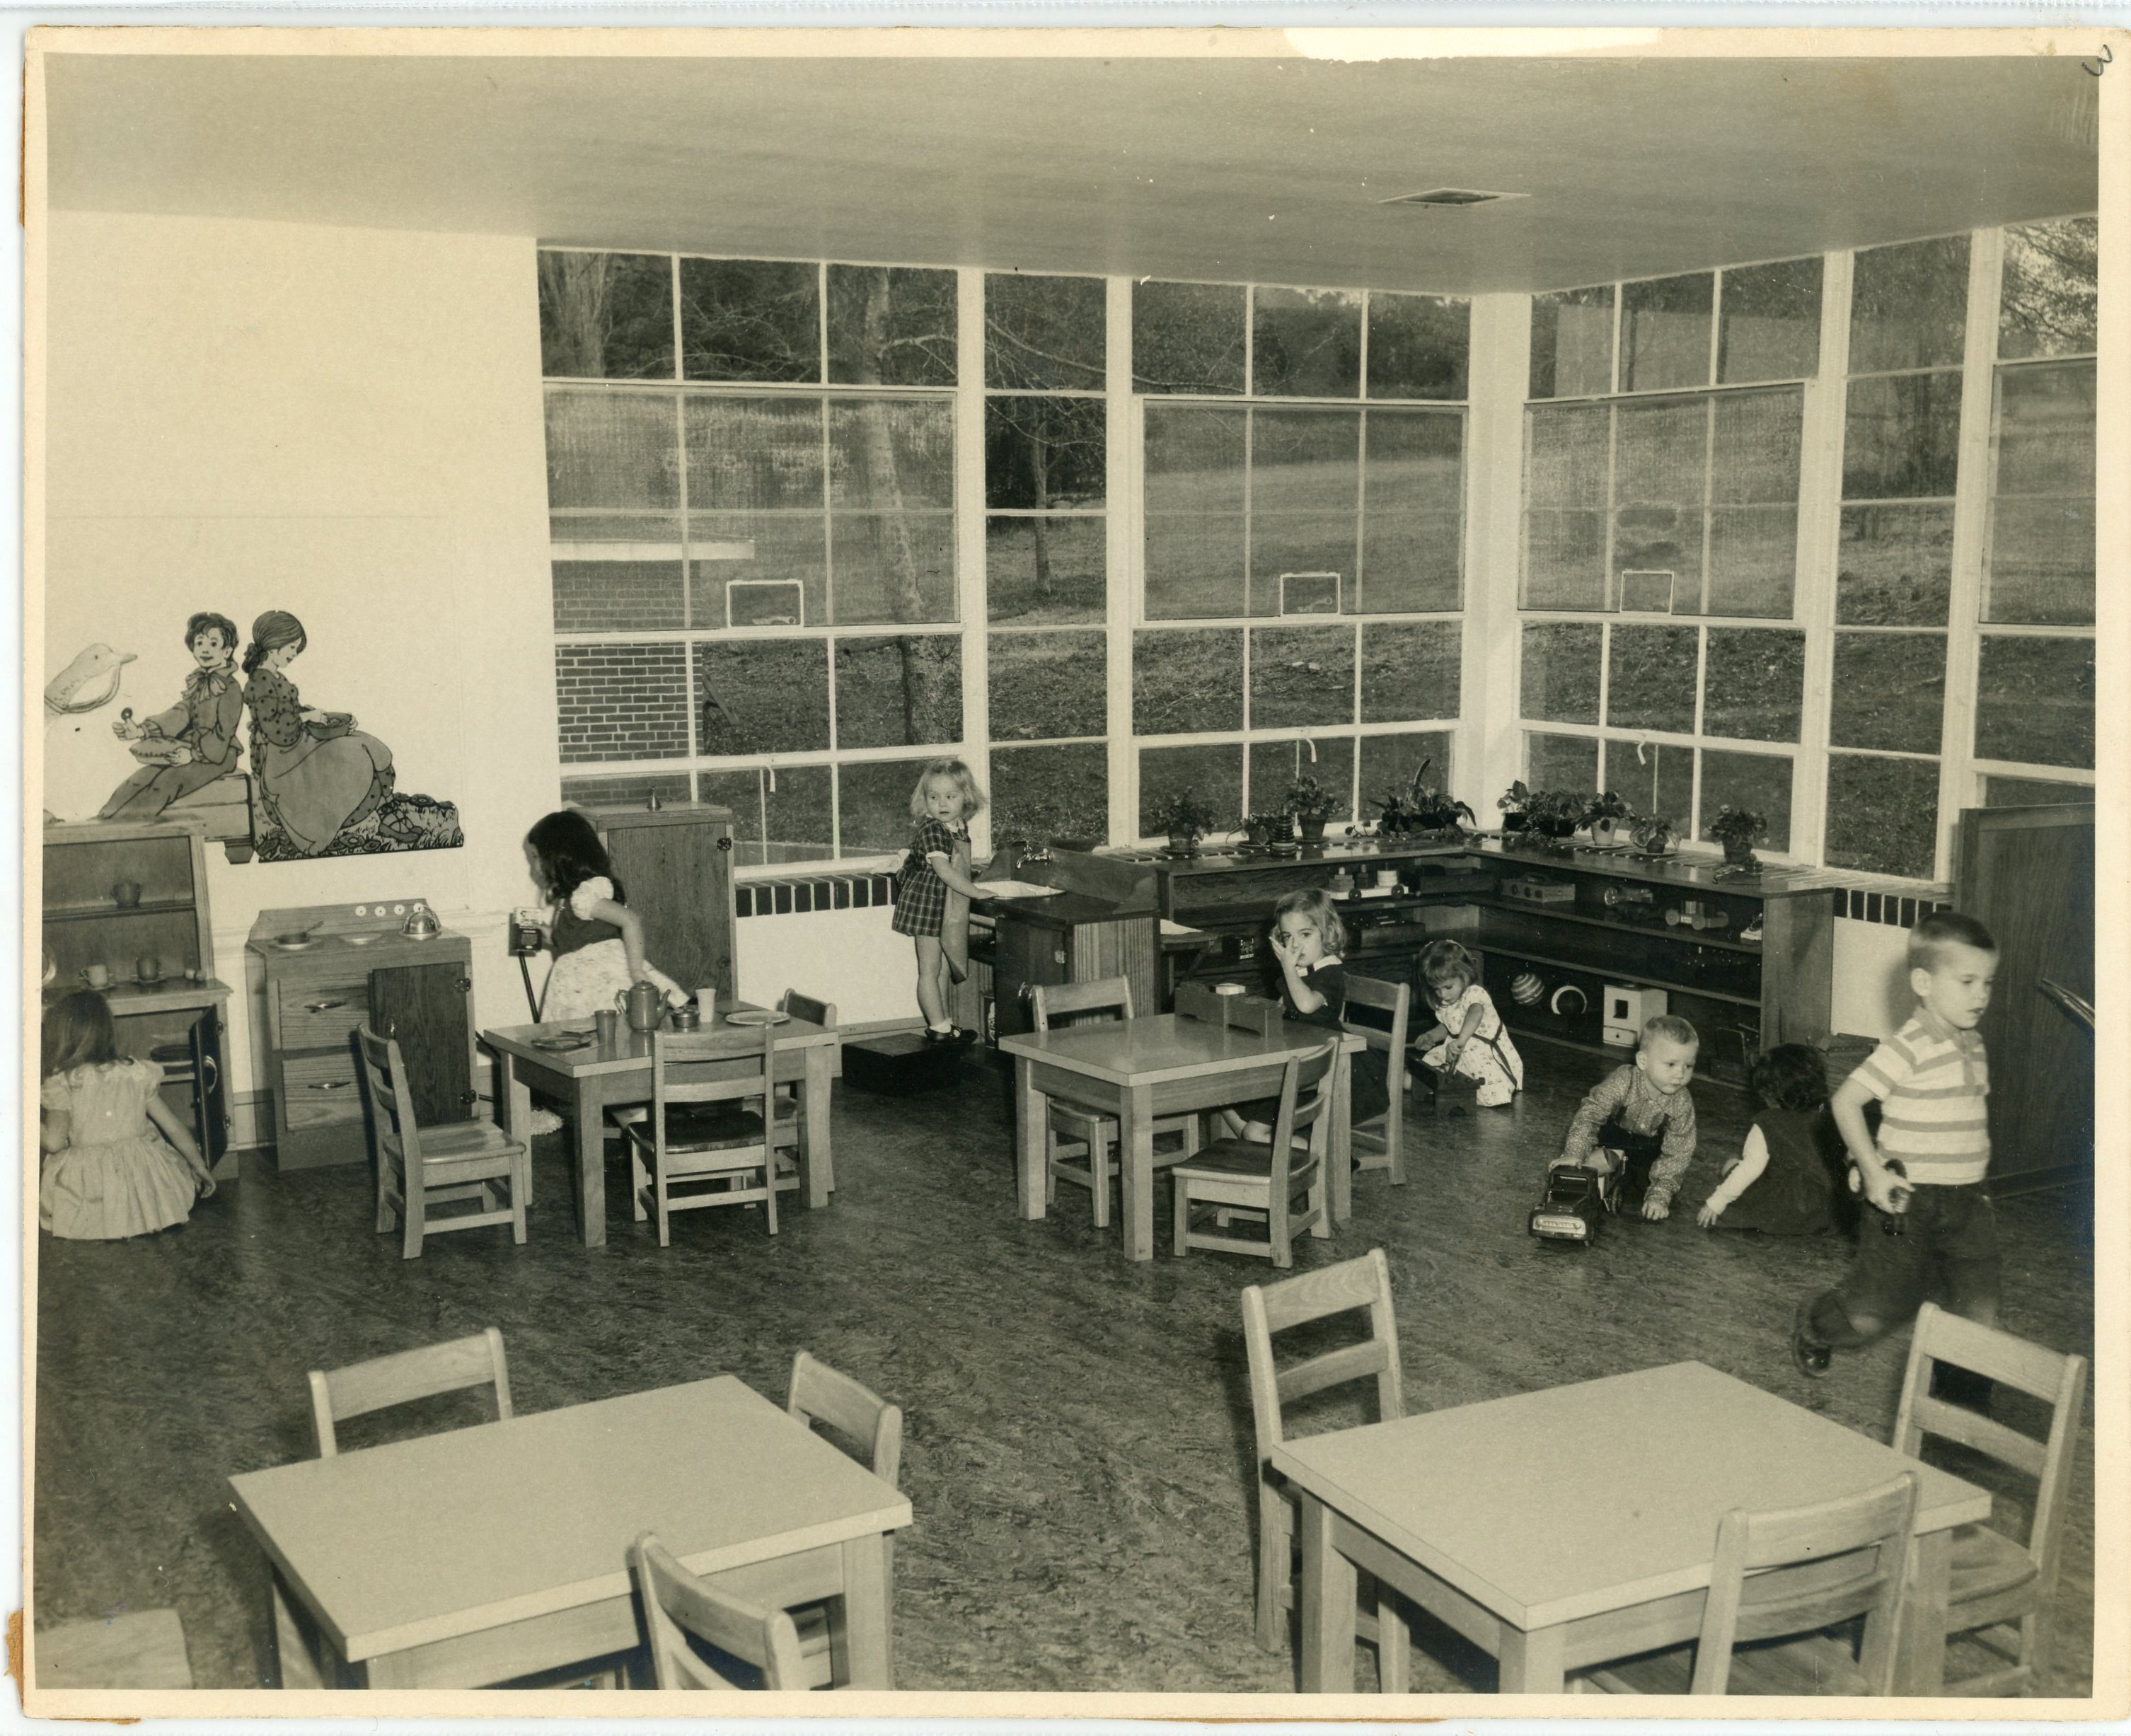 Inside a classroom at the Child Study Laboratory.